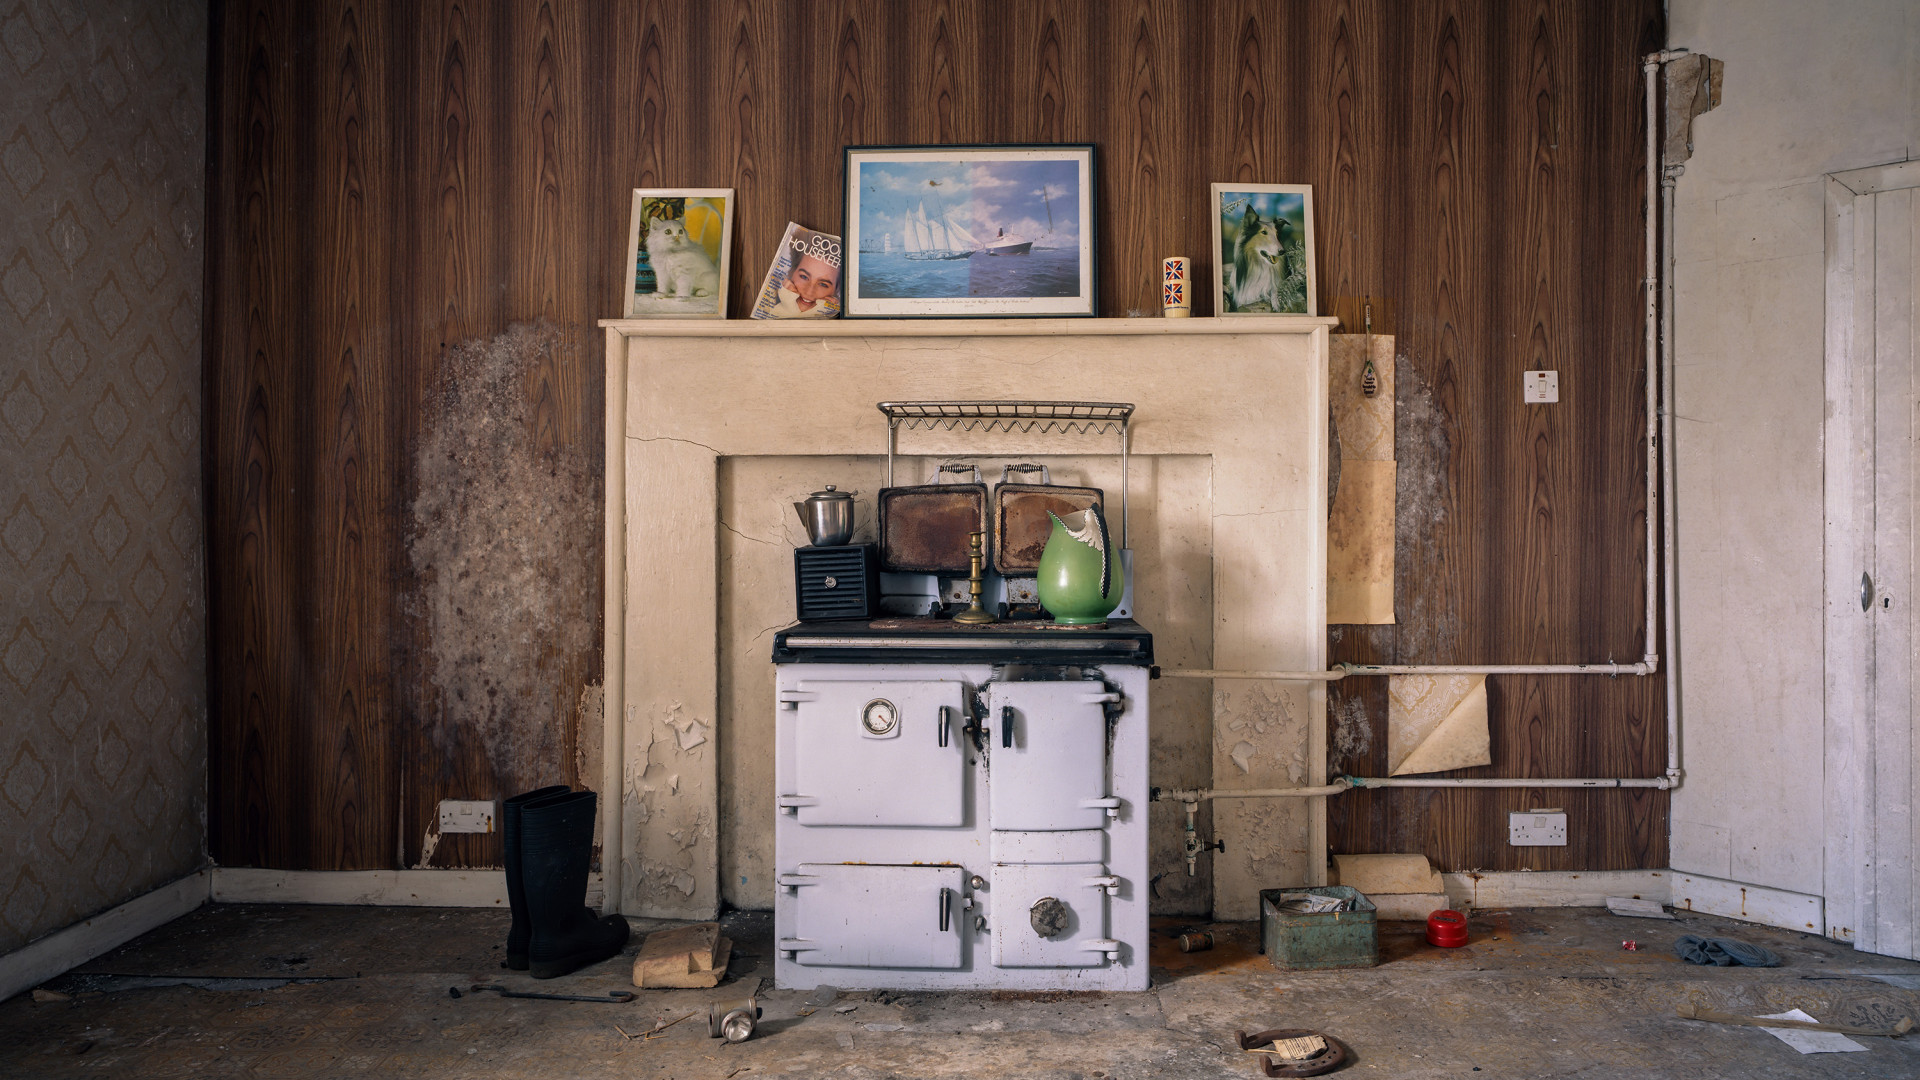 Stove and decorations in abandoned Hebridean home